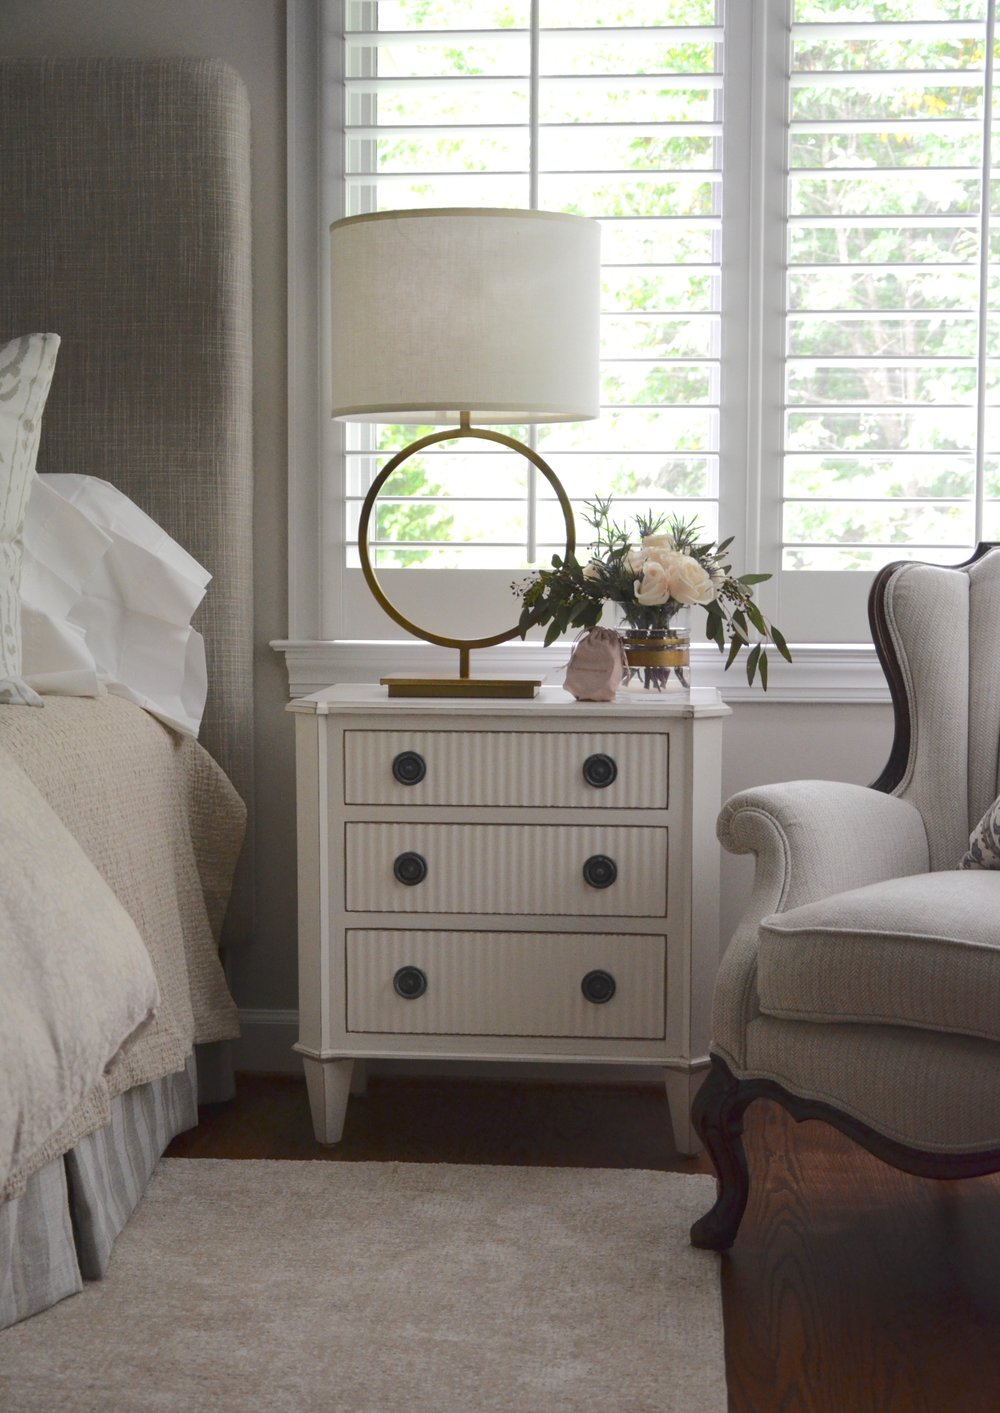 "Sentimental chair reupholstery, updated nightstands and table lamps, turndown swag bag in our client ""Turning-down for an Update"" in McLean, VA. Turndown Service and Design by Valerianne of DC."